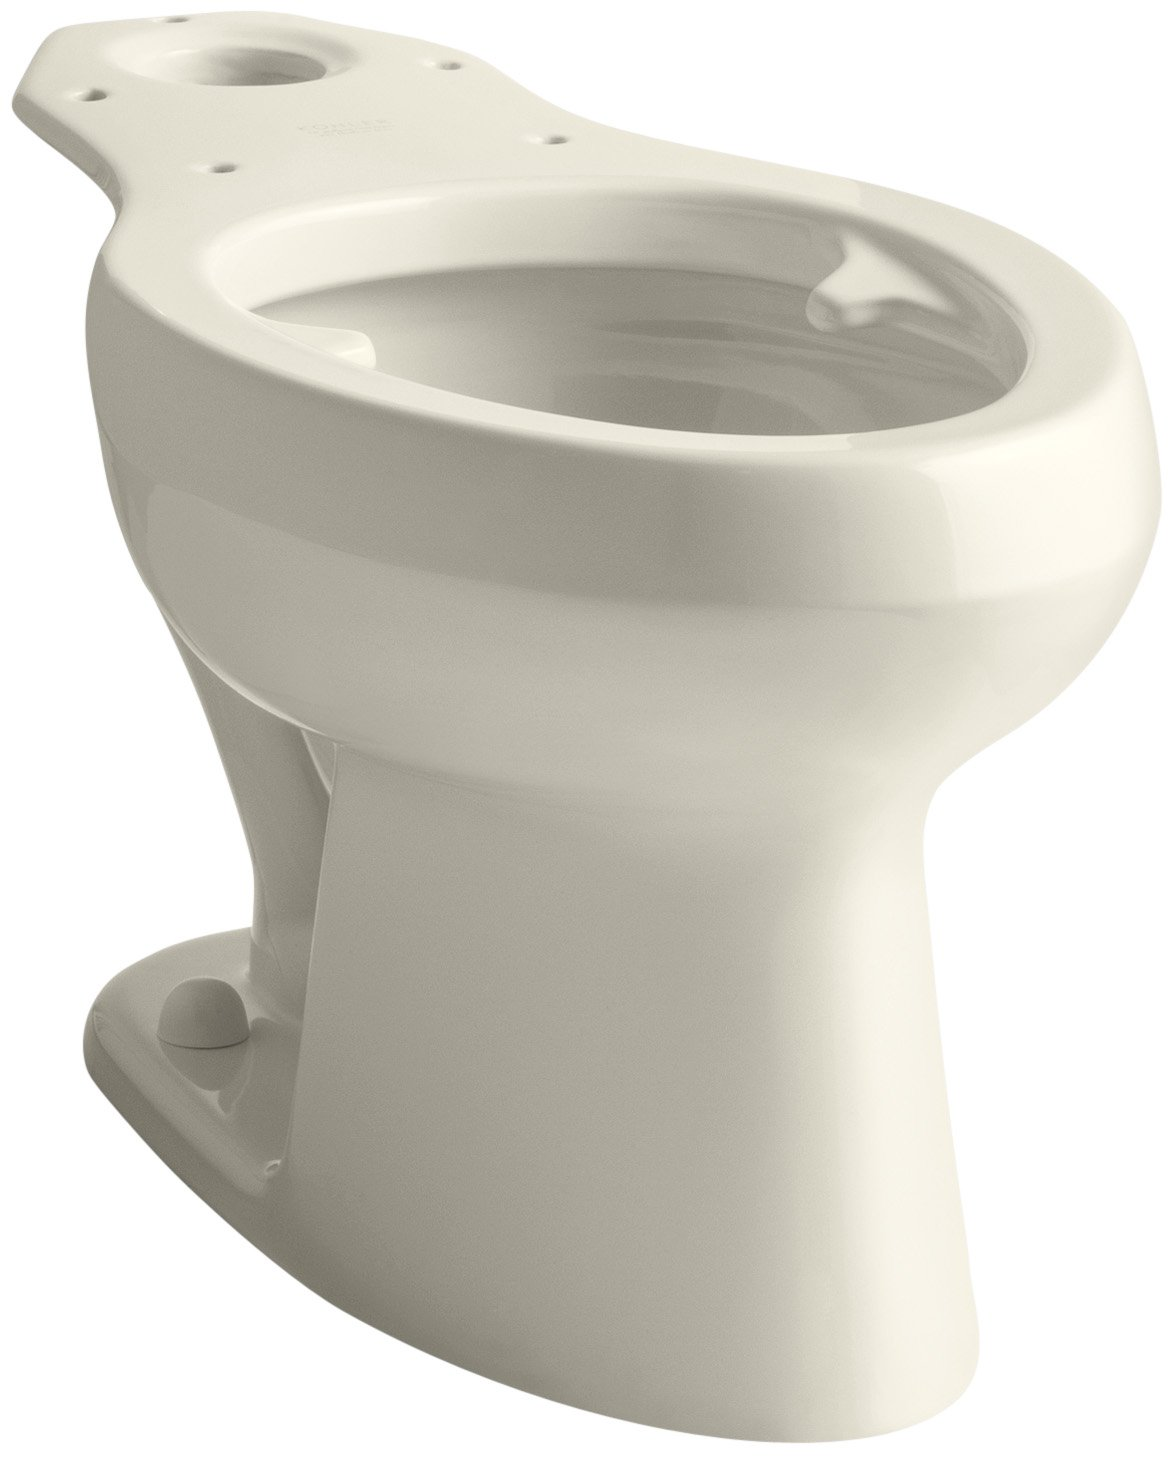 Kohler K-4303-L-47 Wellworth Pressure Lite Toilet Bowl with Bed Pan Lugs, Almond